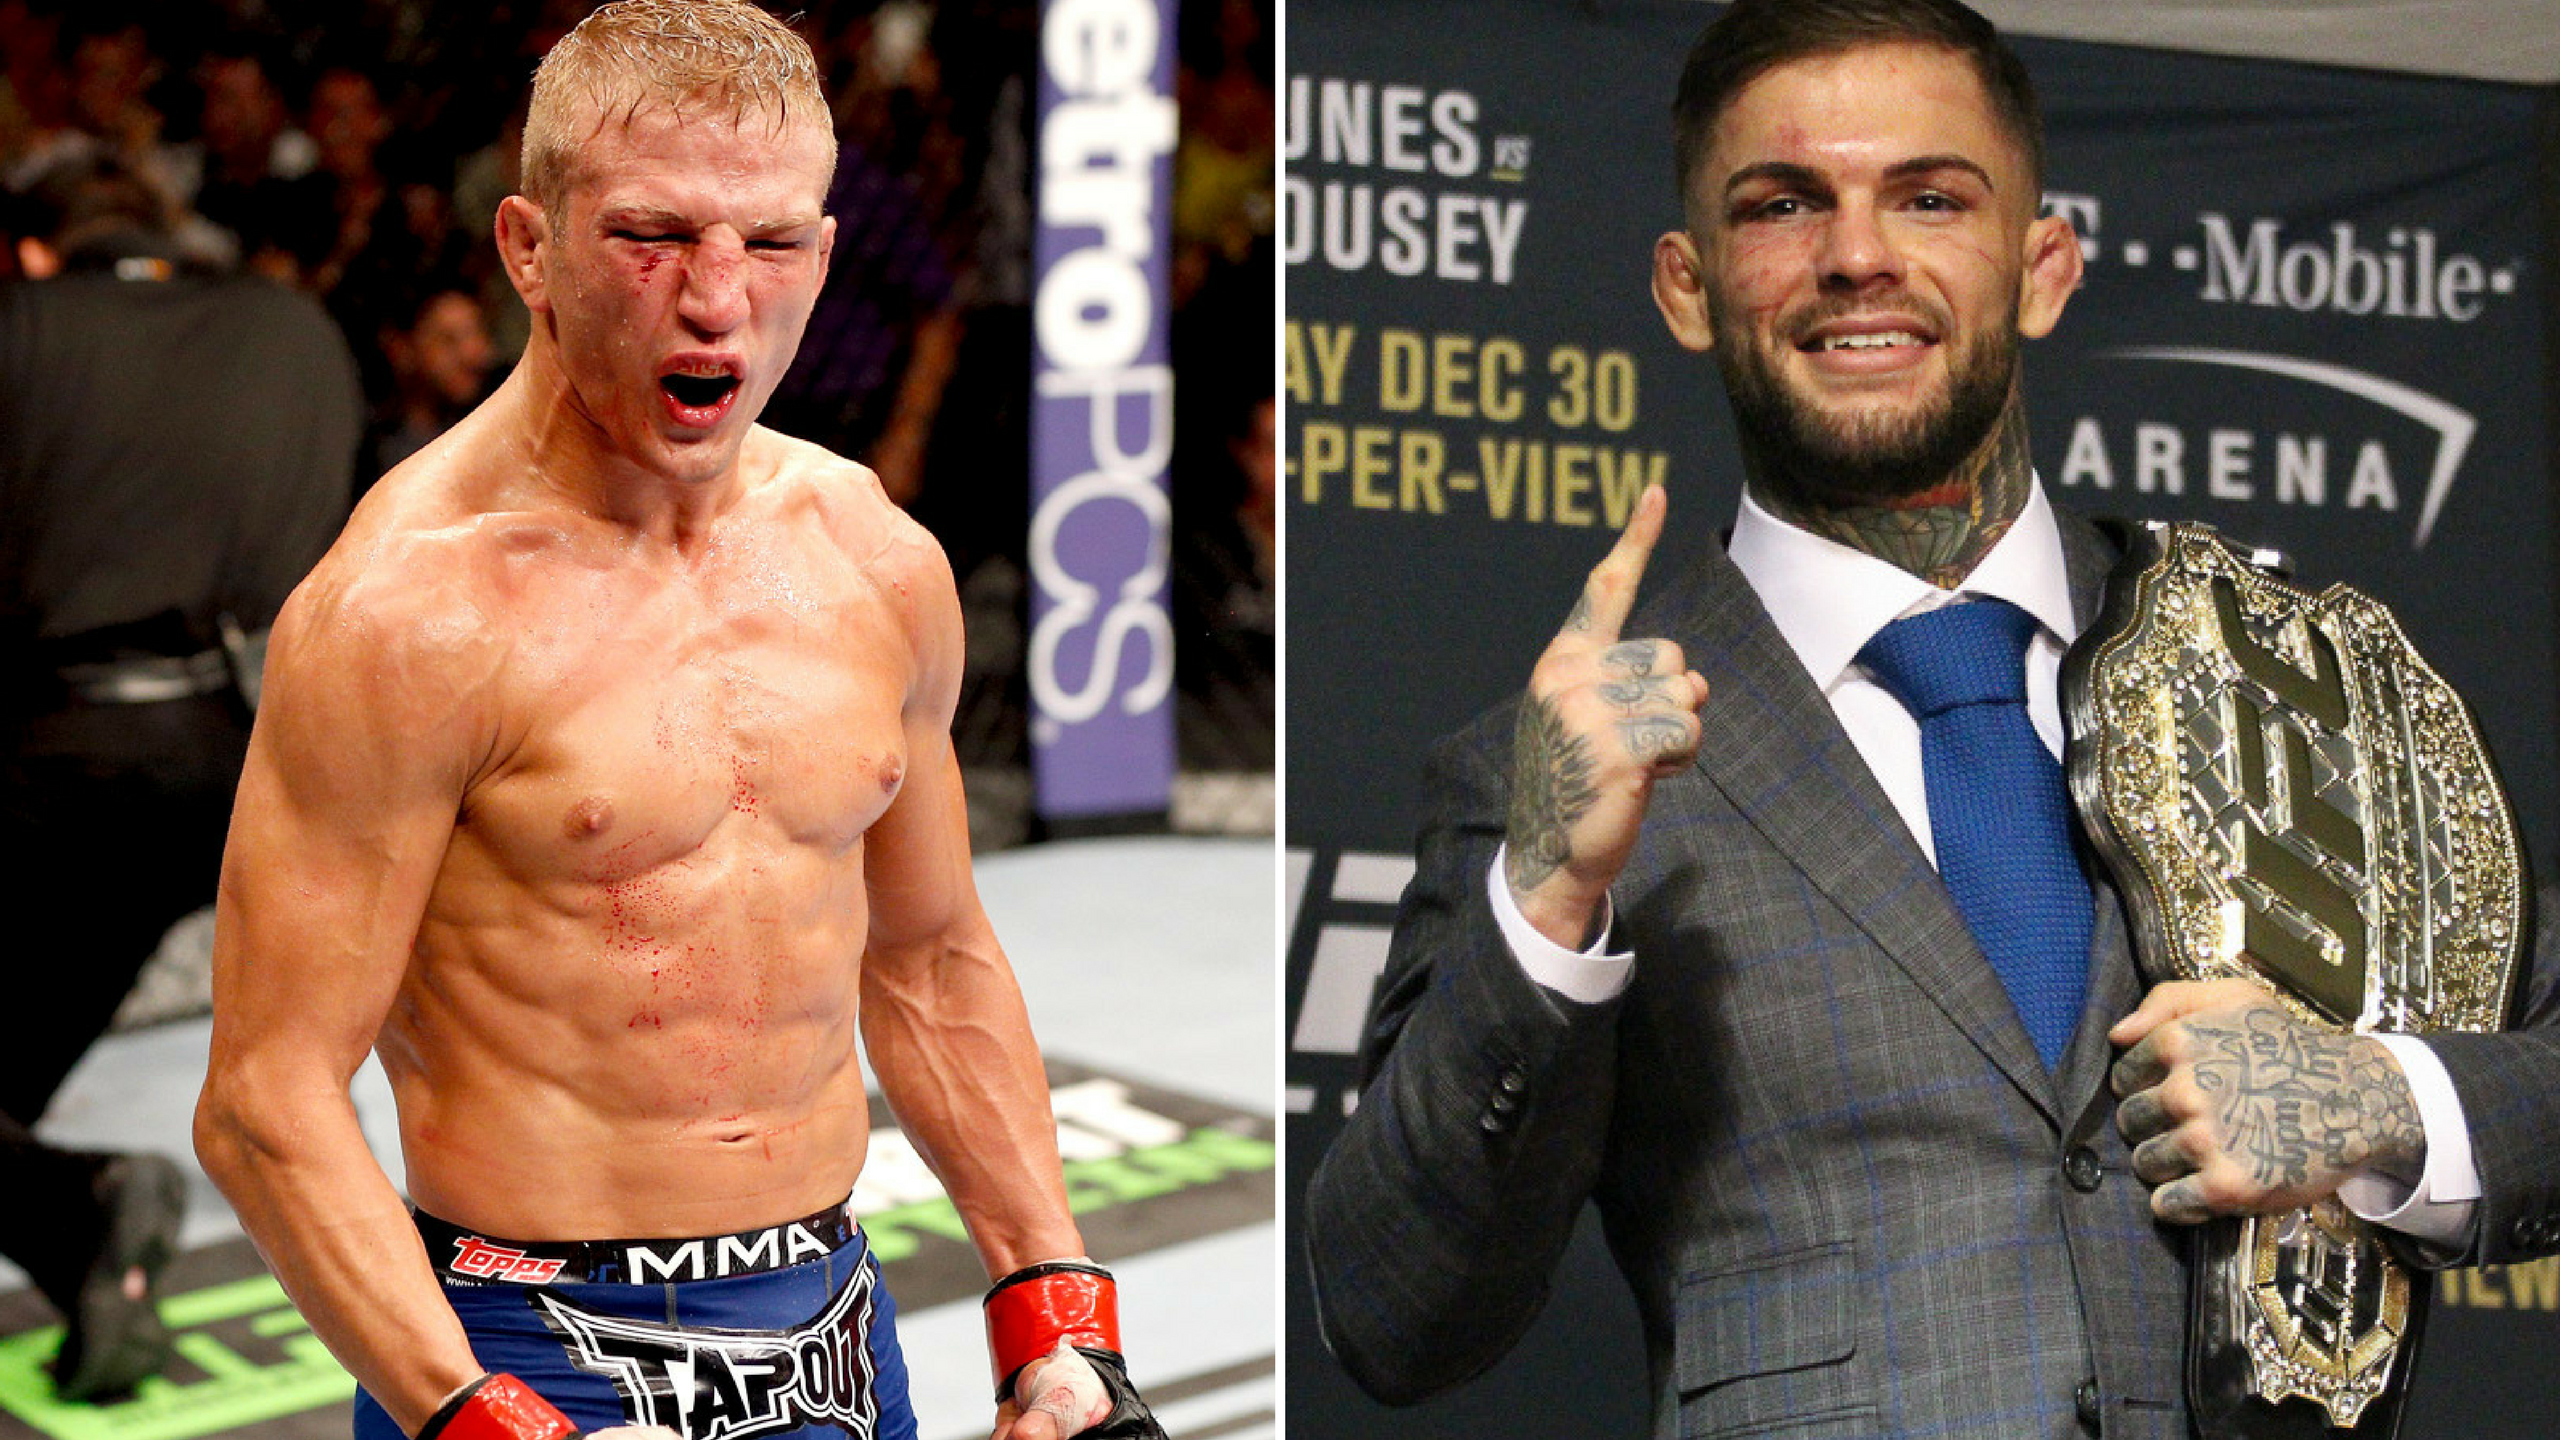 Interview: Cody Garbrandt takes a swipe at T.J. Dillashaw, says he doesn't believe in what he says -